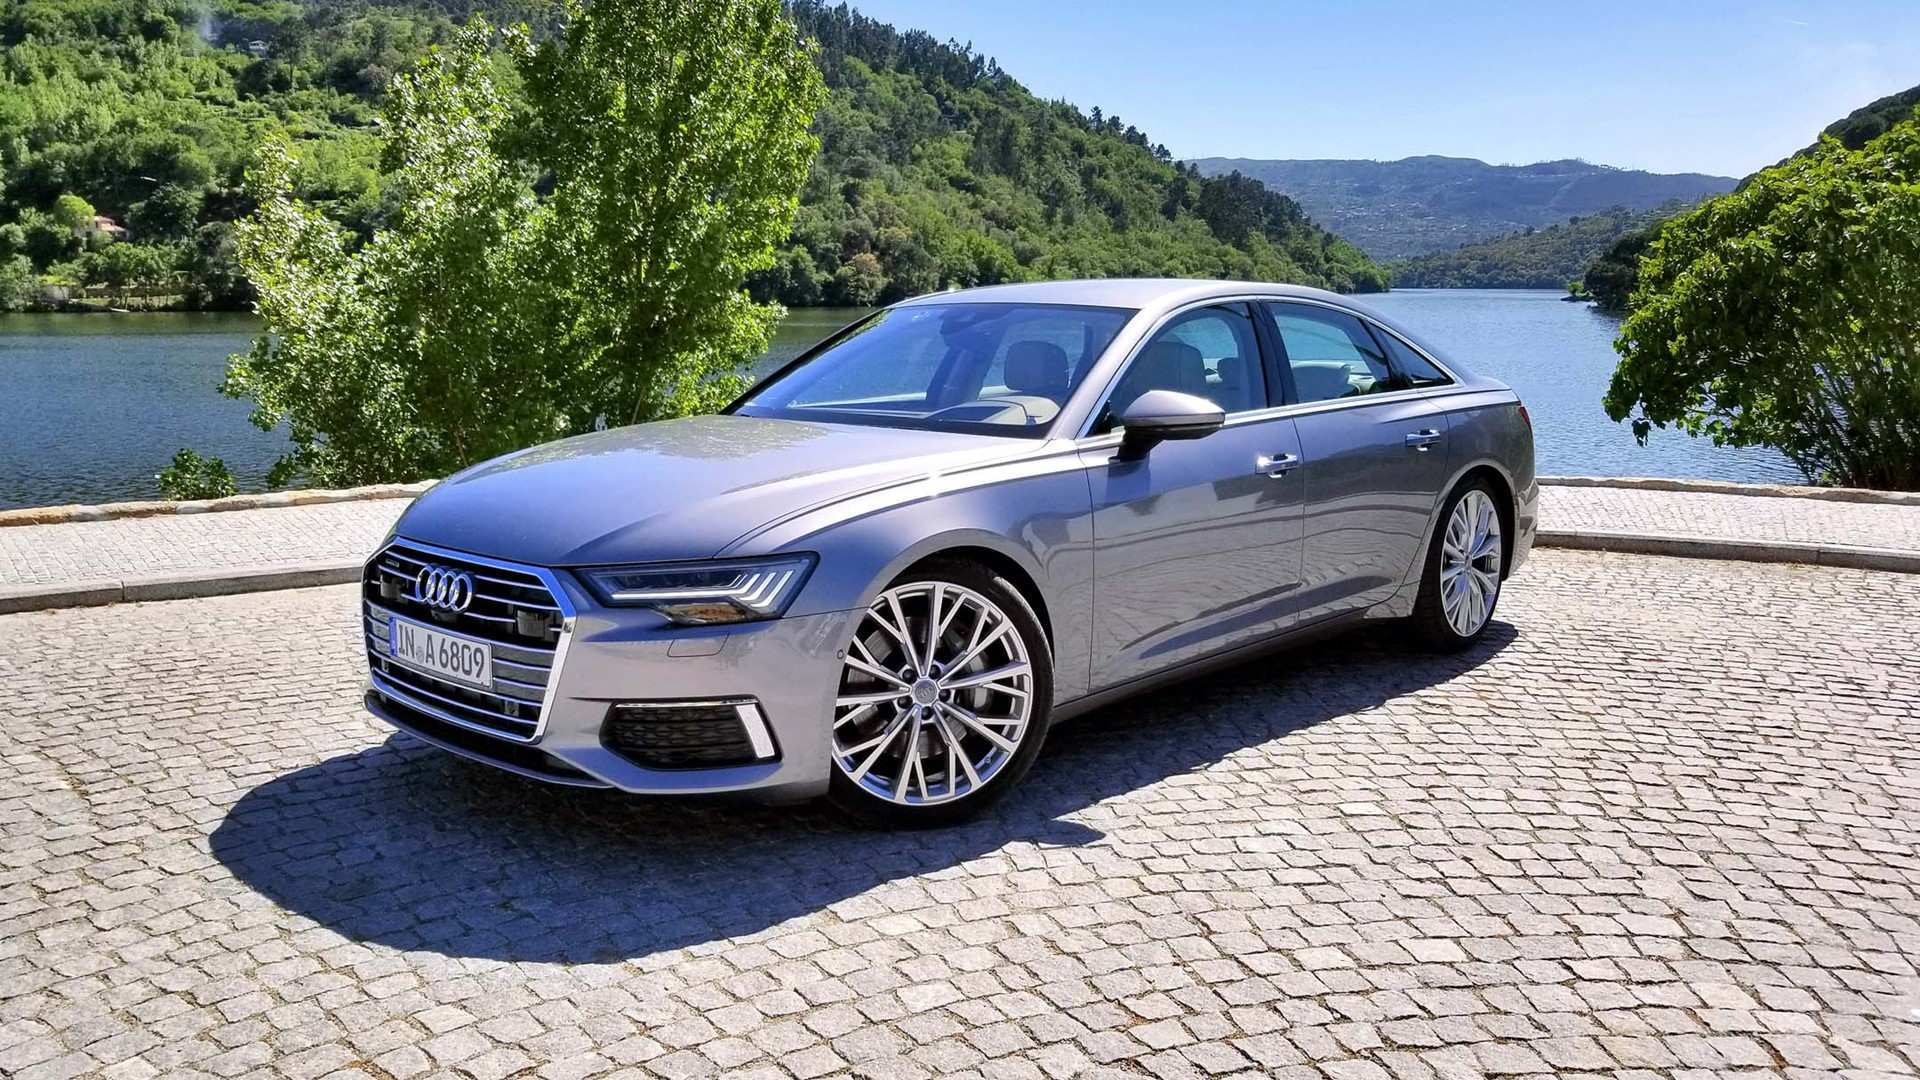 30 New 2019 Audi A6 Msrp Photos